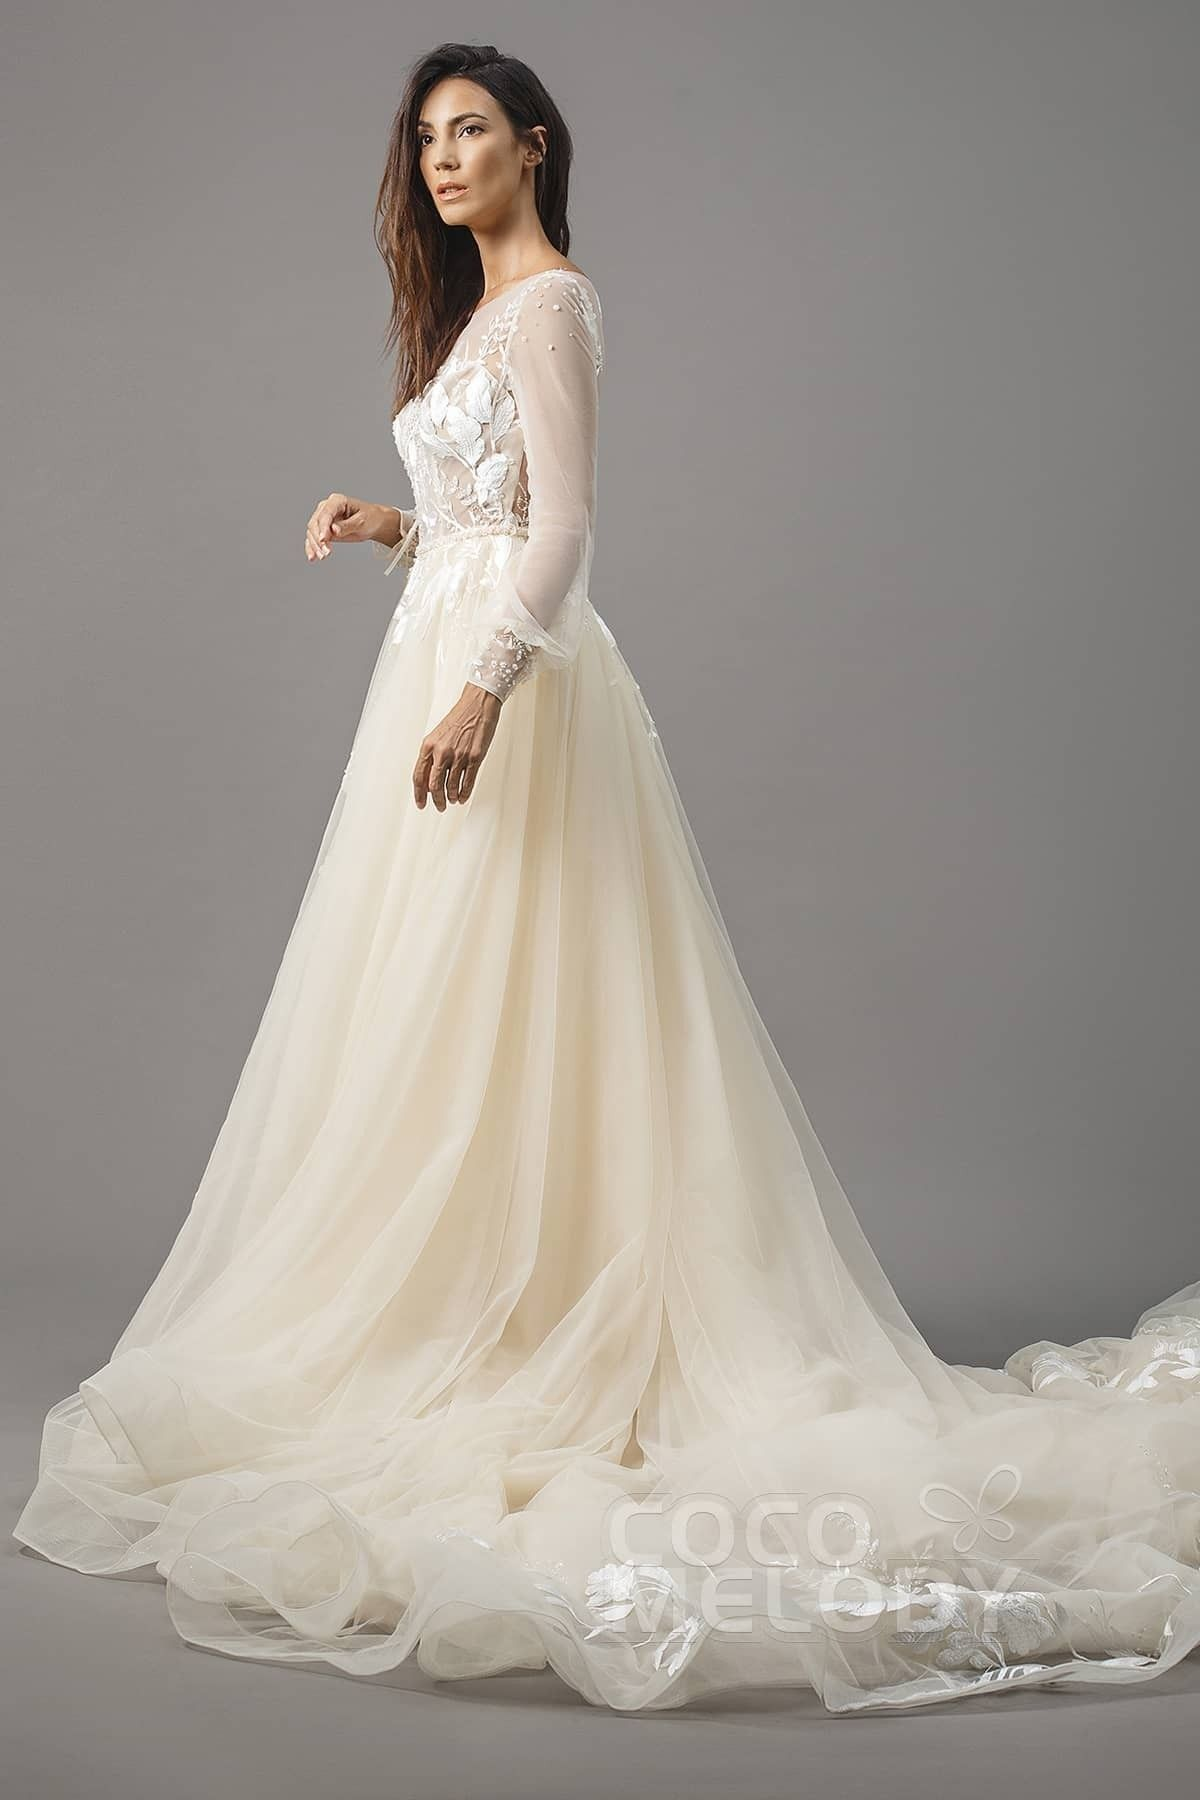 70aec1a48e006 Luxurious A-Line Illusion Natural Chapel Train Tulle Ivory/Champagne Long  Sleeve Zipper With Buttons Wedding Dress with Appliques Beading and Sashes  LD5199 ...